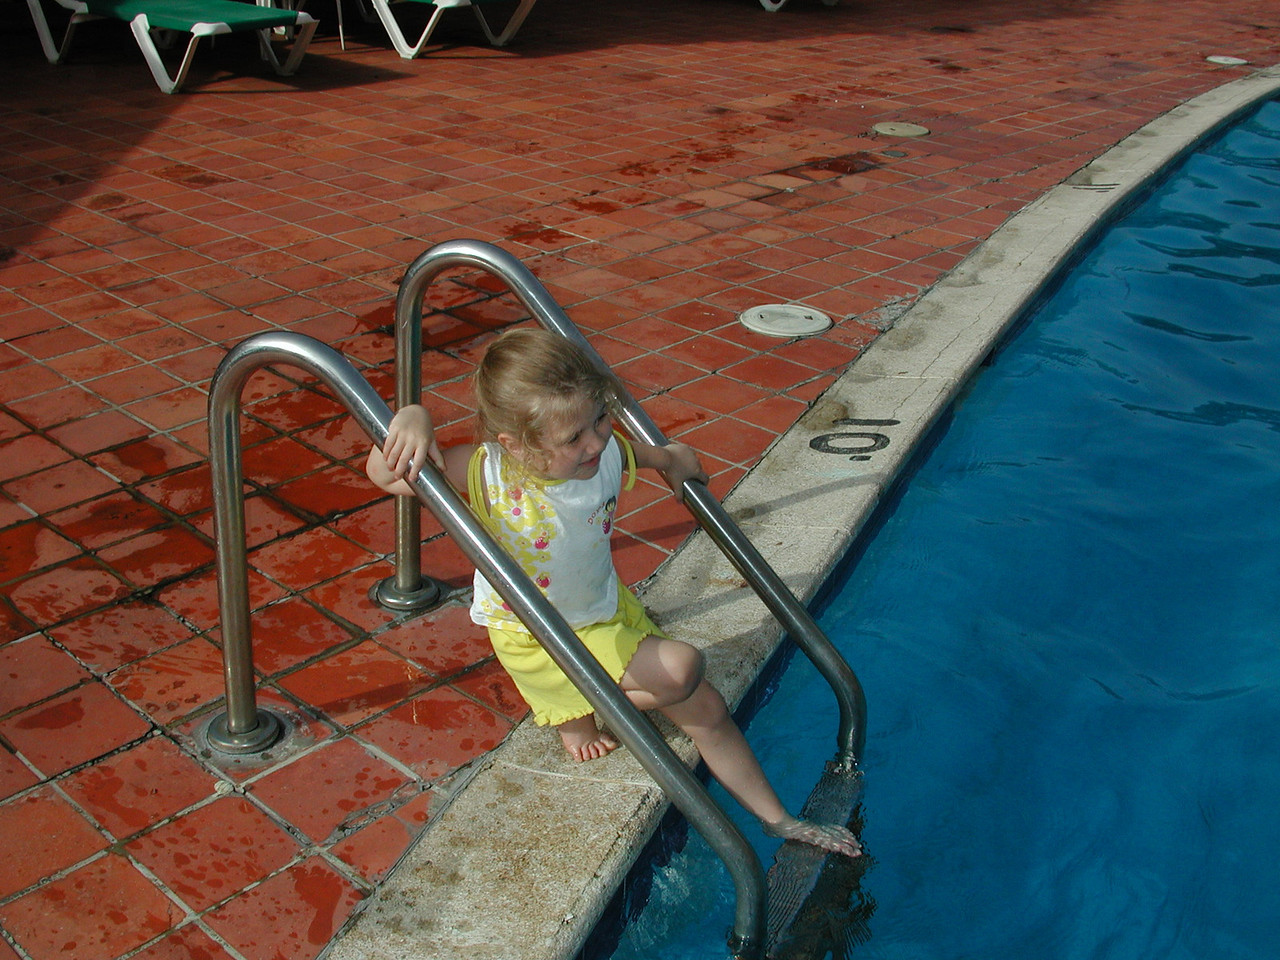 Stormie at the Hotel Hispanola pool.